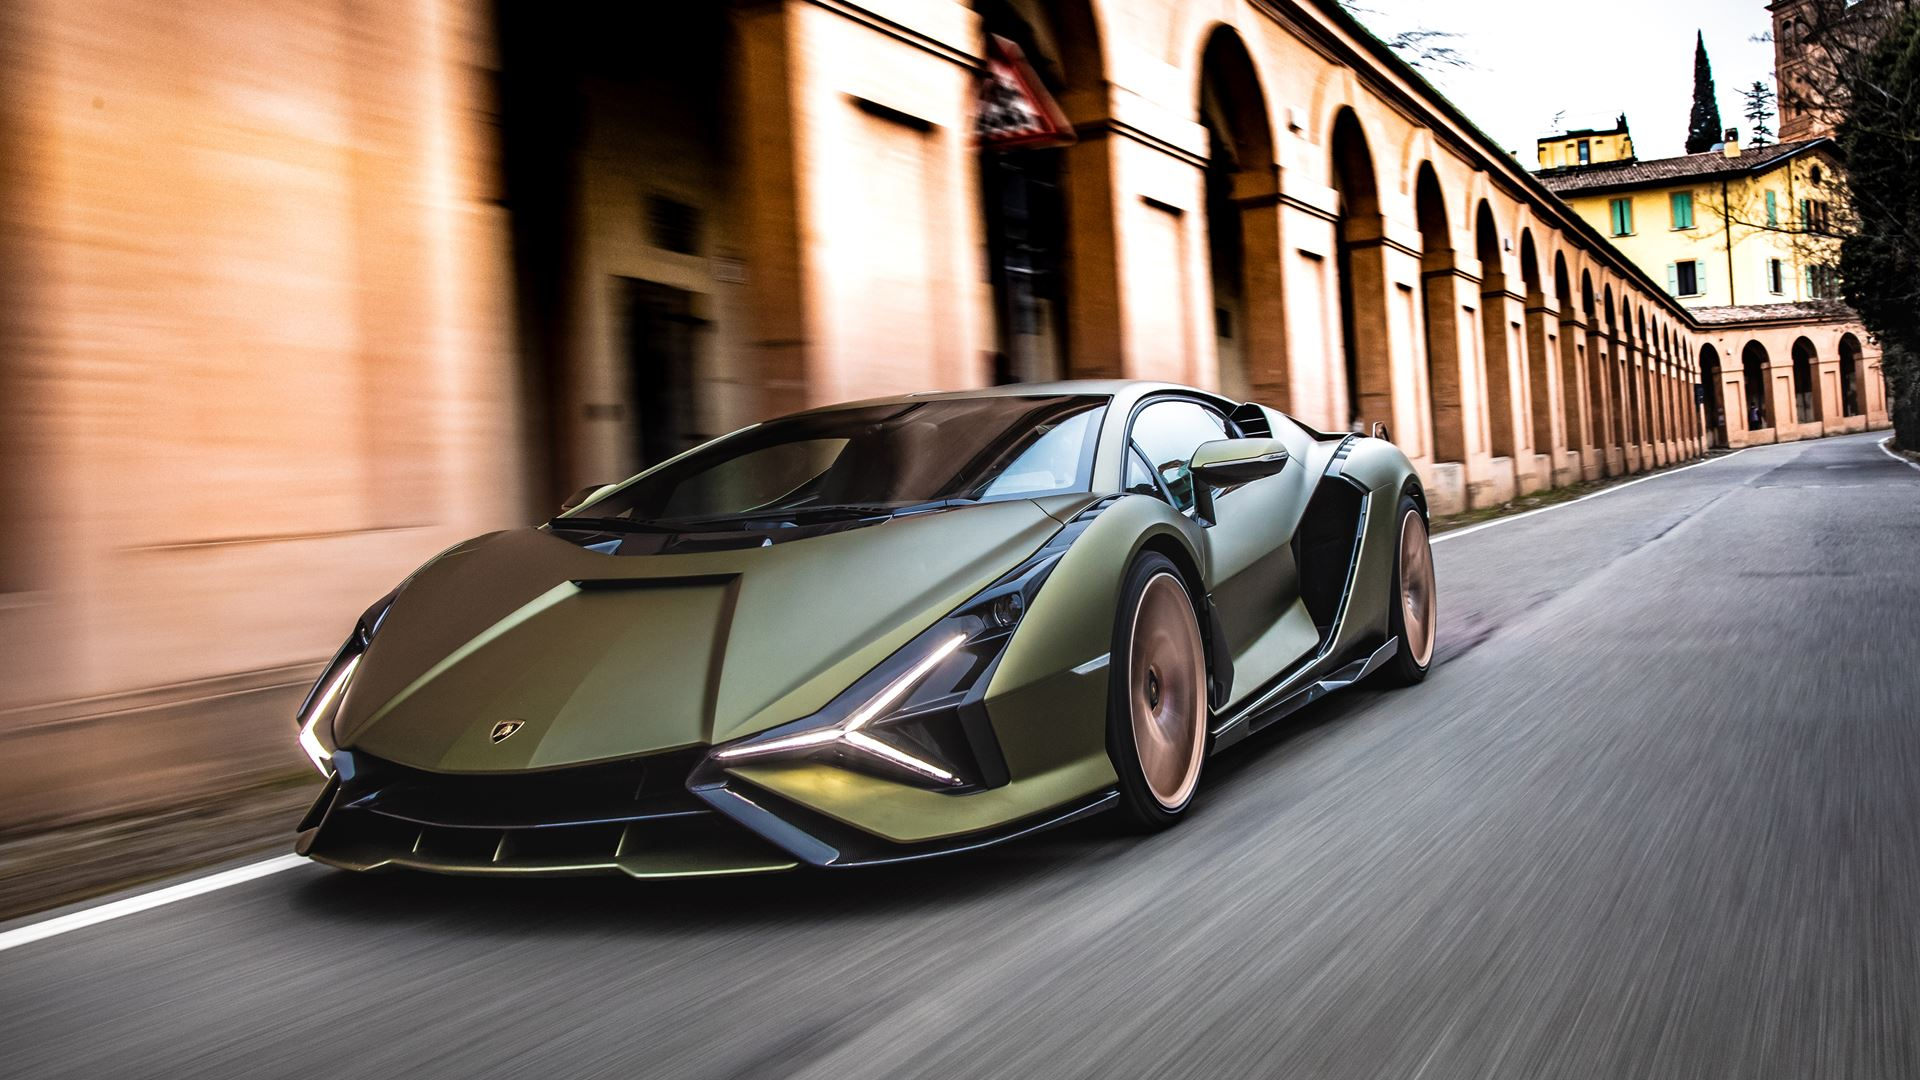 Lamborghini Sián pays homage to the porticoes of Bologna. Following the UNESCO designation, the super sports car from Sant'Agata travels the streets of Bologna's porticoes - Image 4